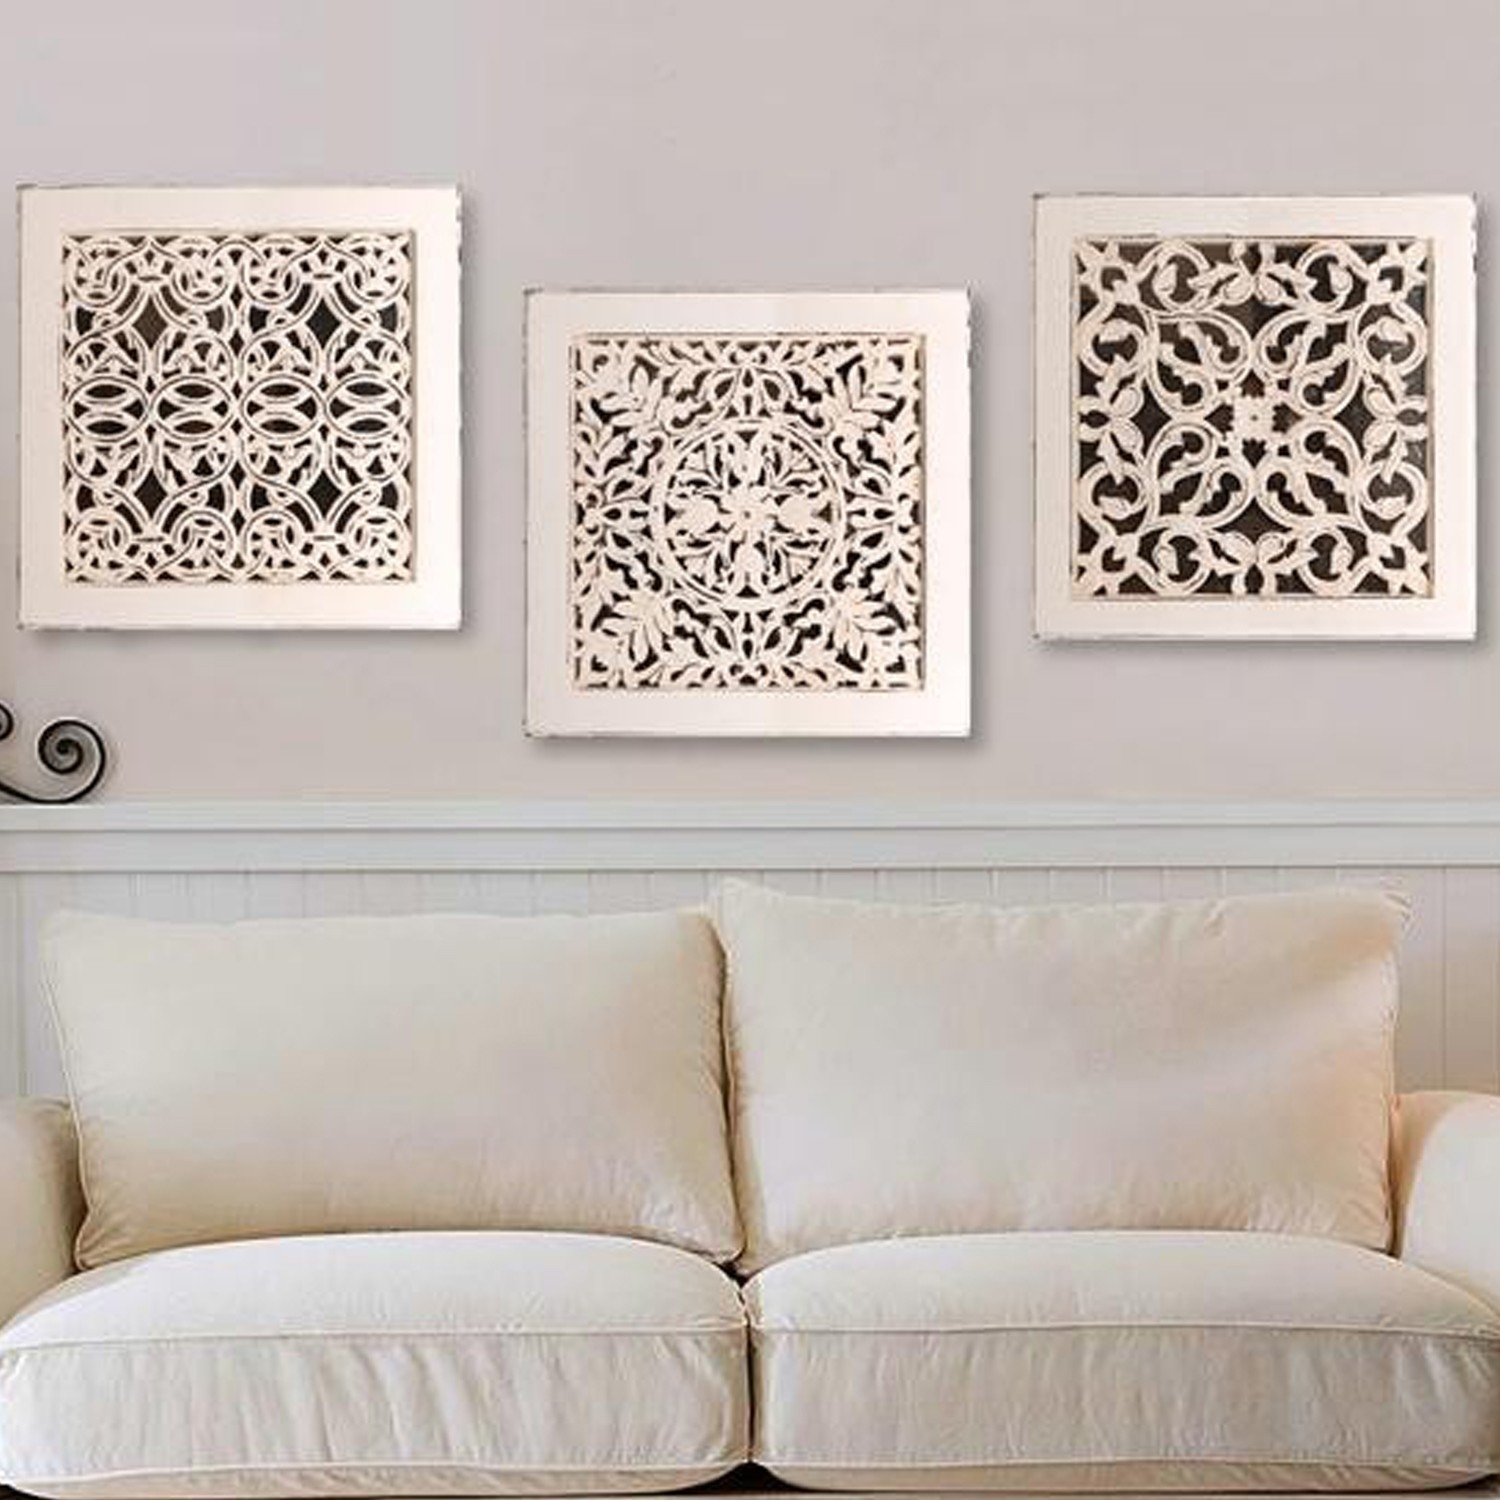 Fretwork Wall Art: White (Set Of 3) | The Yellow Door Store Throughout Most Popular White Wall Art (View 9 of 20)